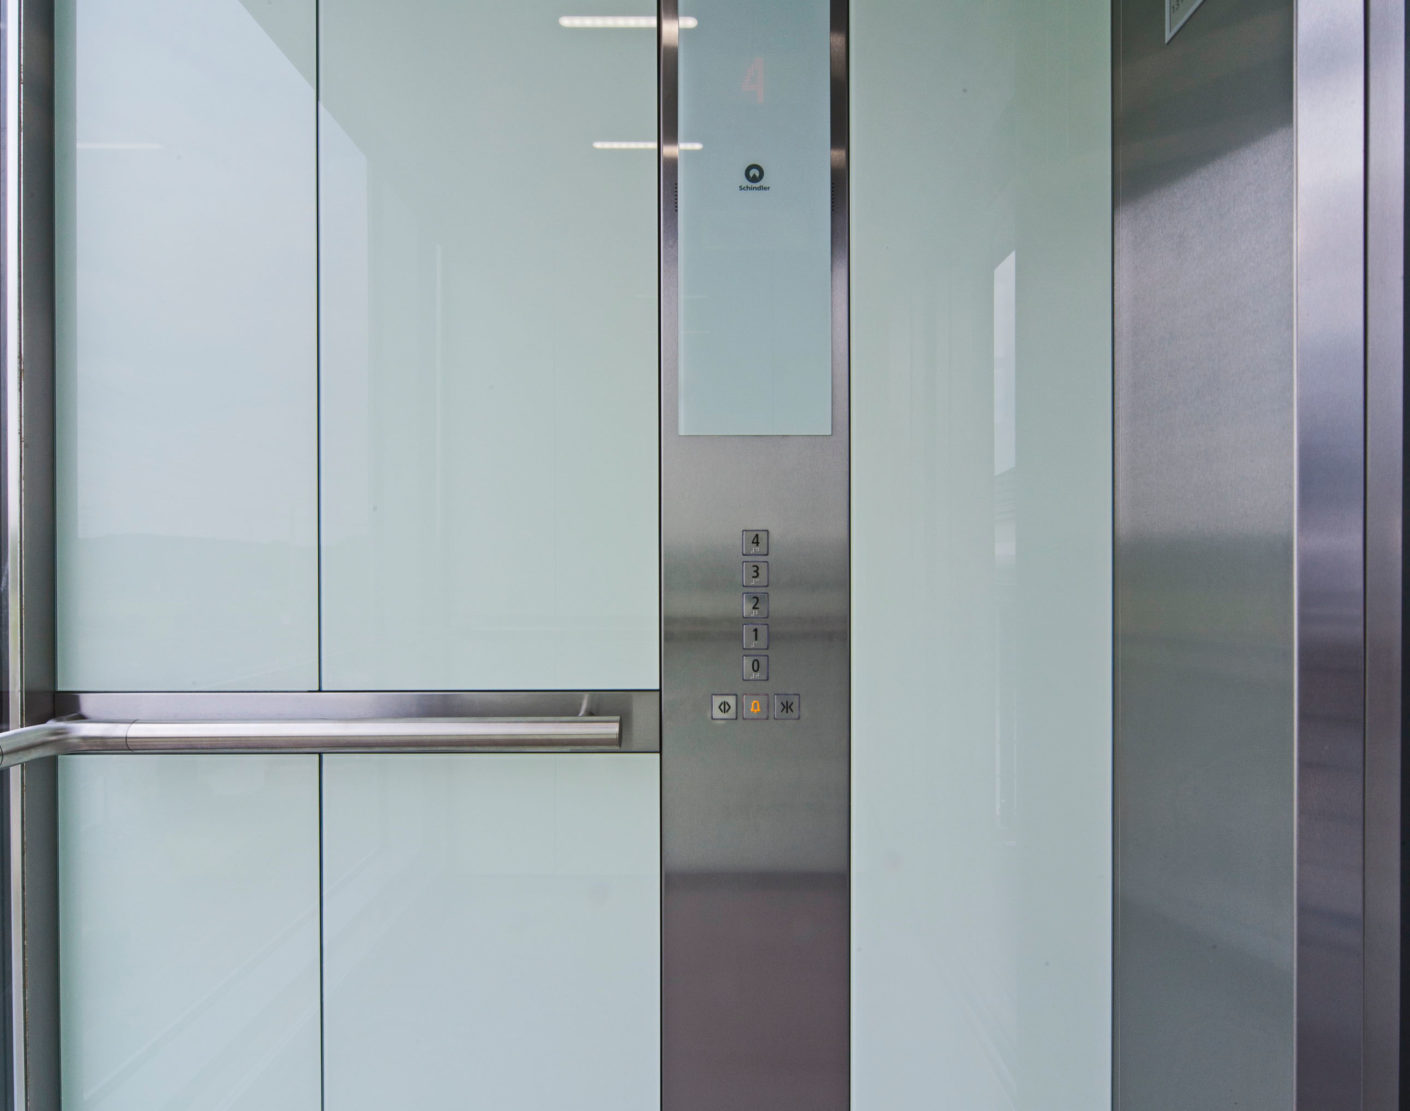 The Schindler 5500 offers numerous design options. For the Grotekamp estate glass with a white background was chosen, which makes the elevator cars appear light and sophisticated.